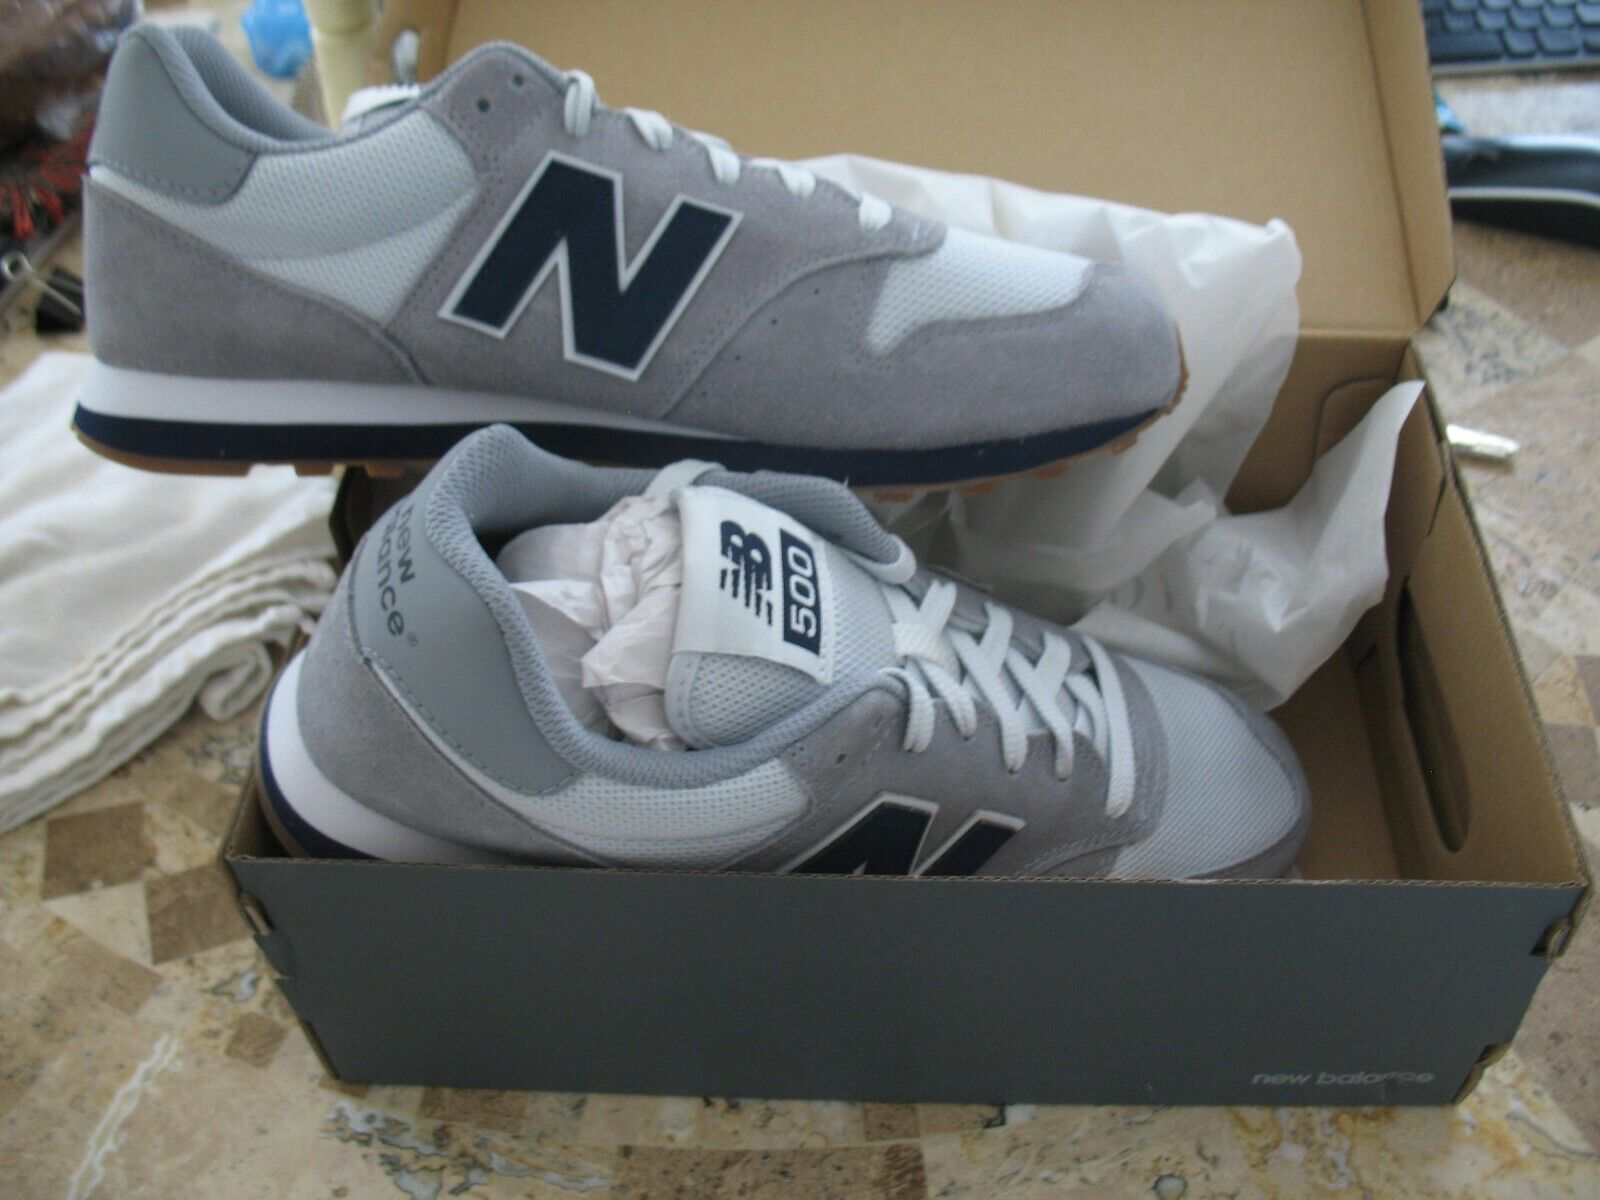 Size 10 - New Balance 500 Classic Gray Blue for sale online | eBay